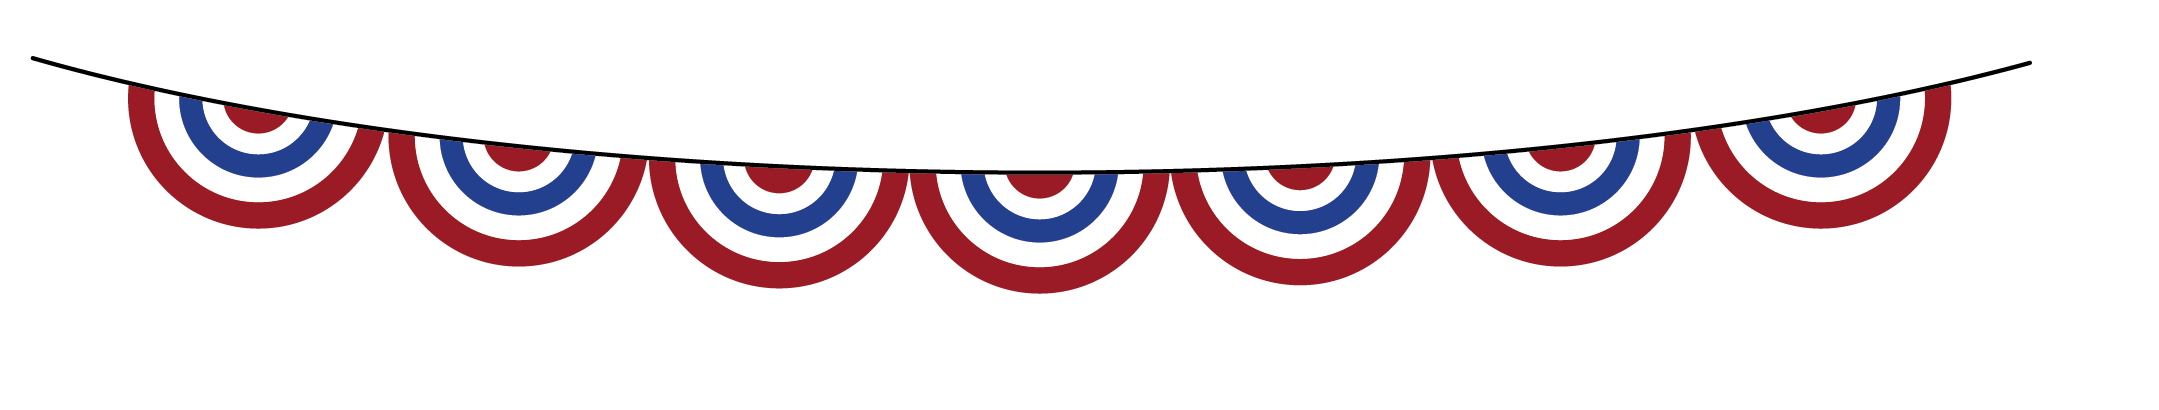 4th of july banner. Th png free